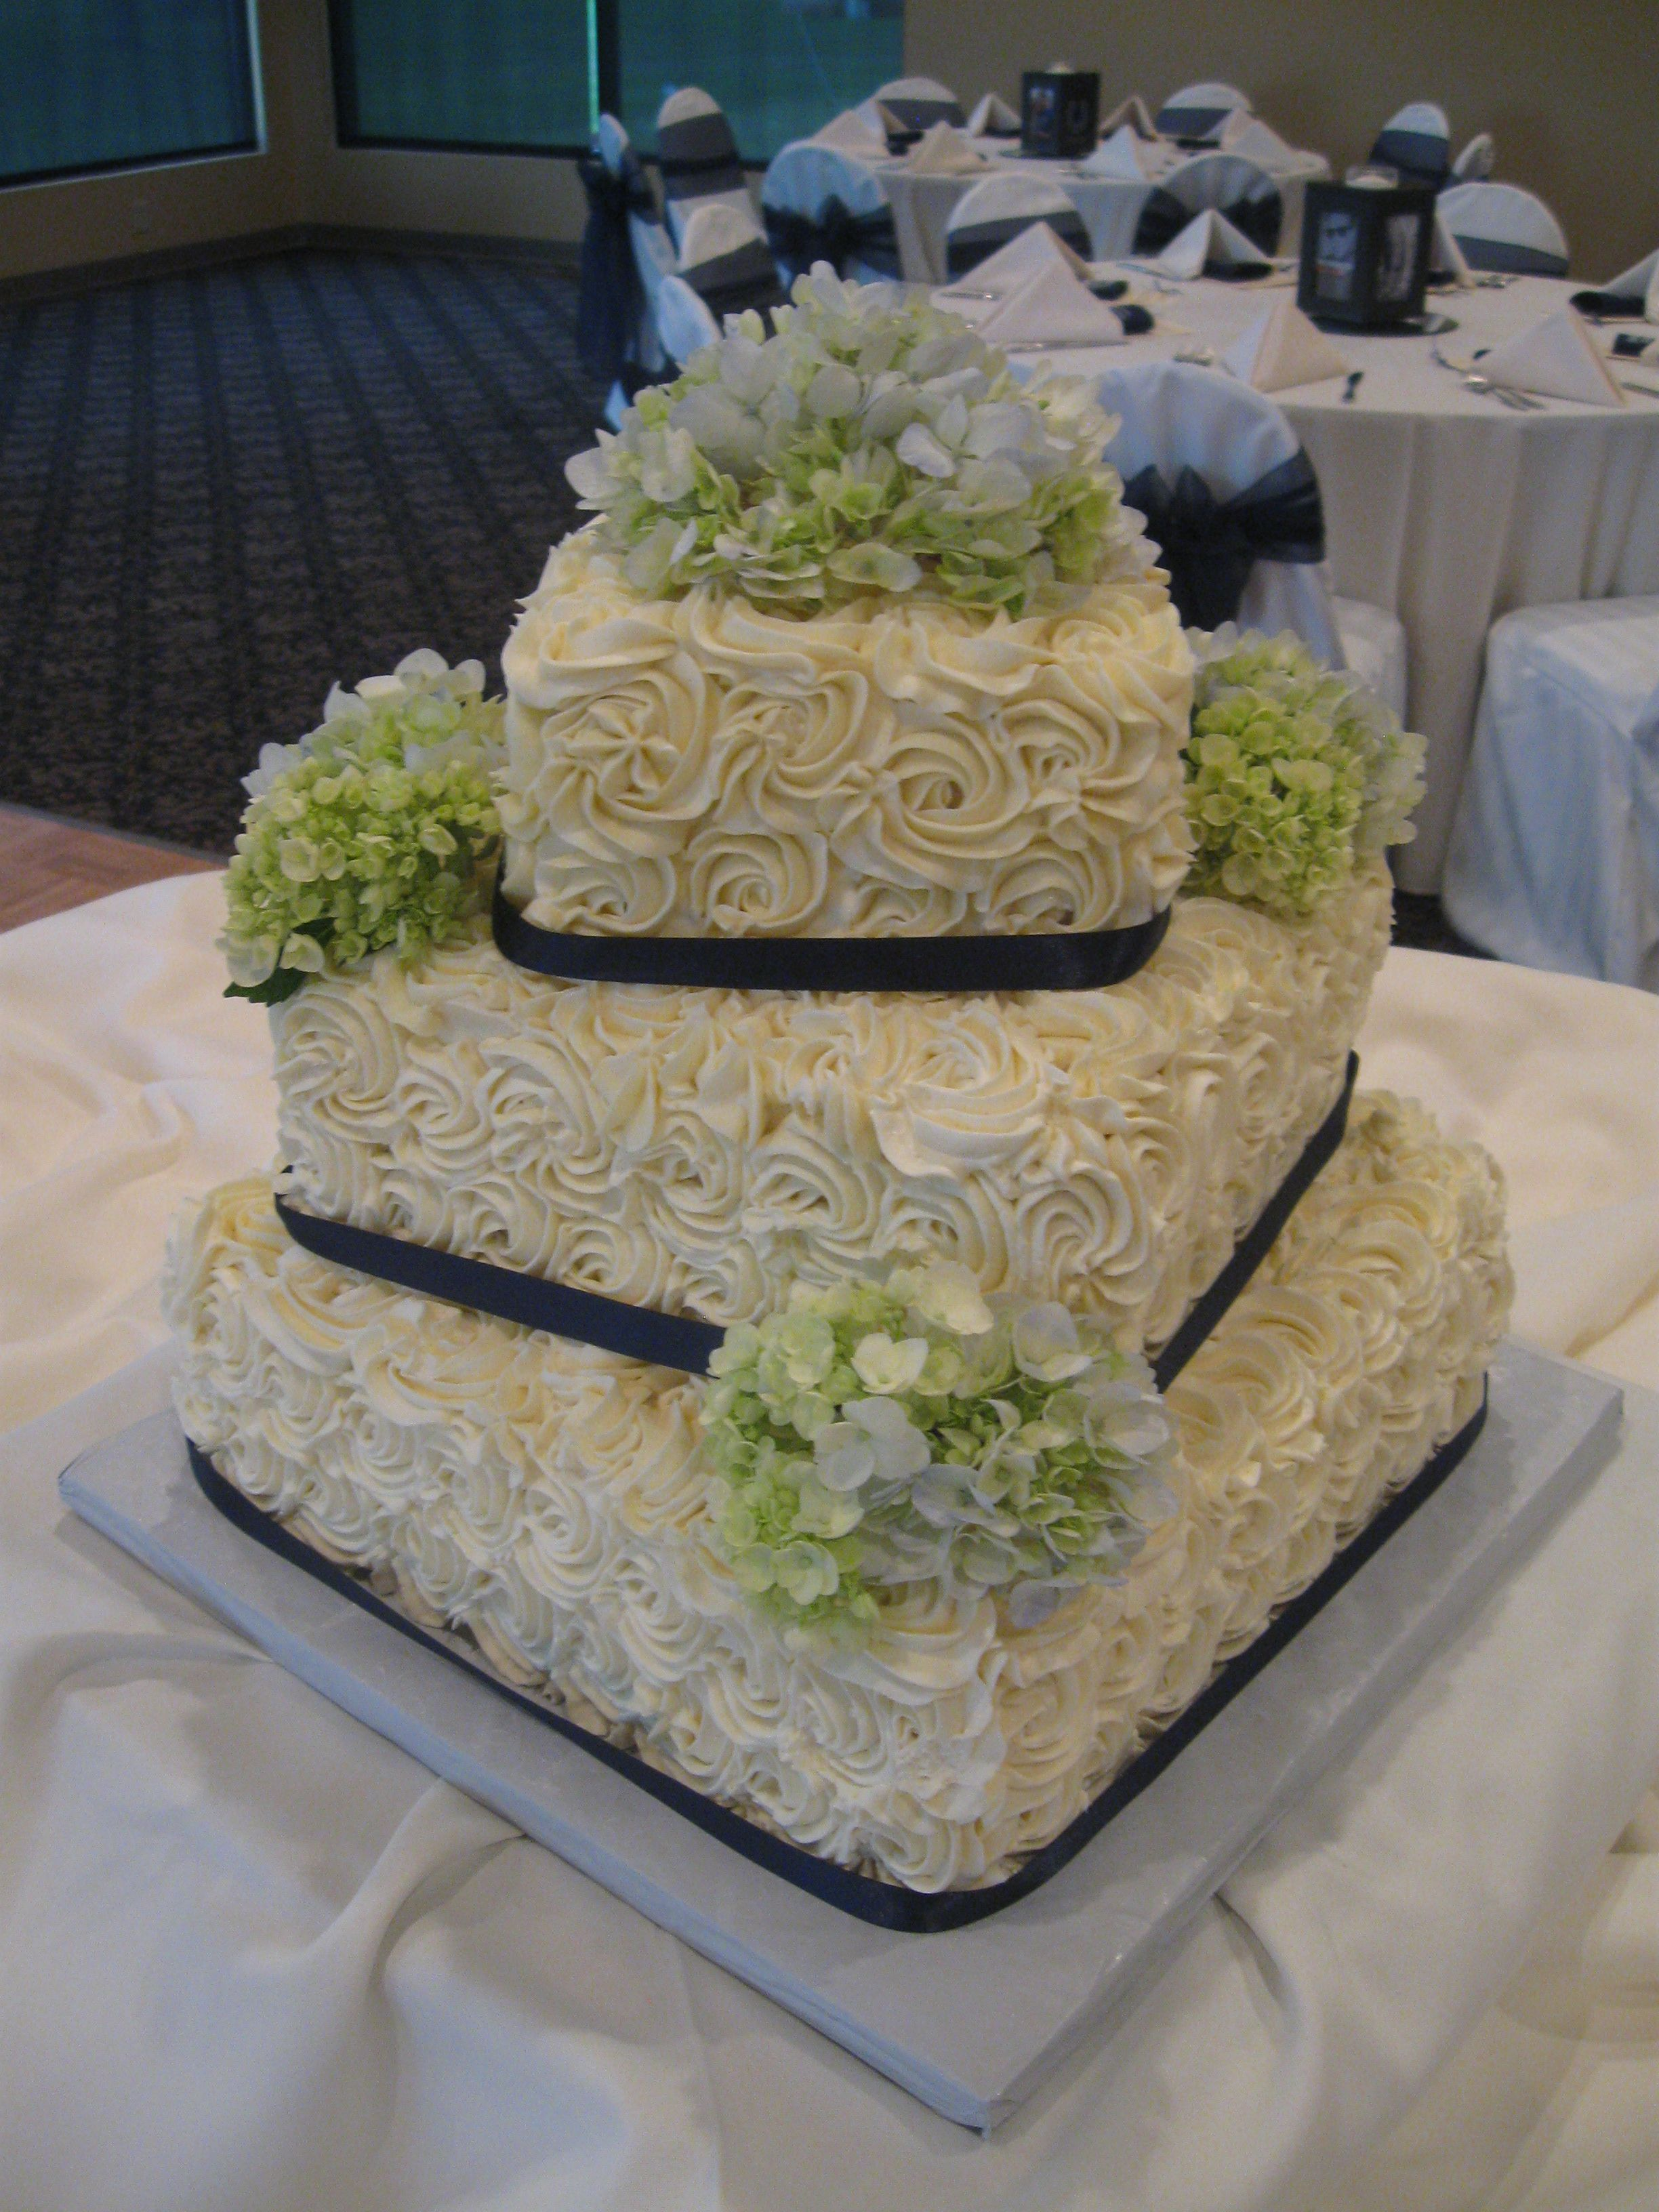 Buttercream rose wedding cake with hydrangeas congrats to paul and